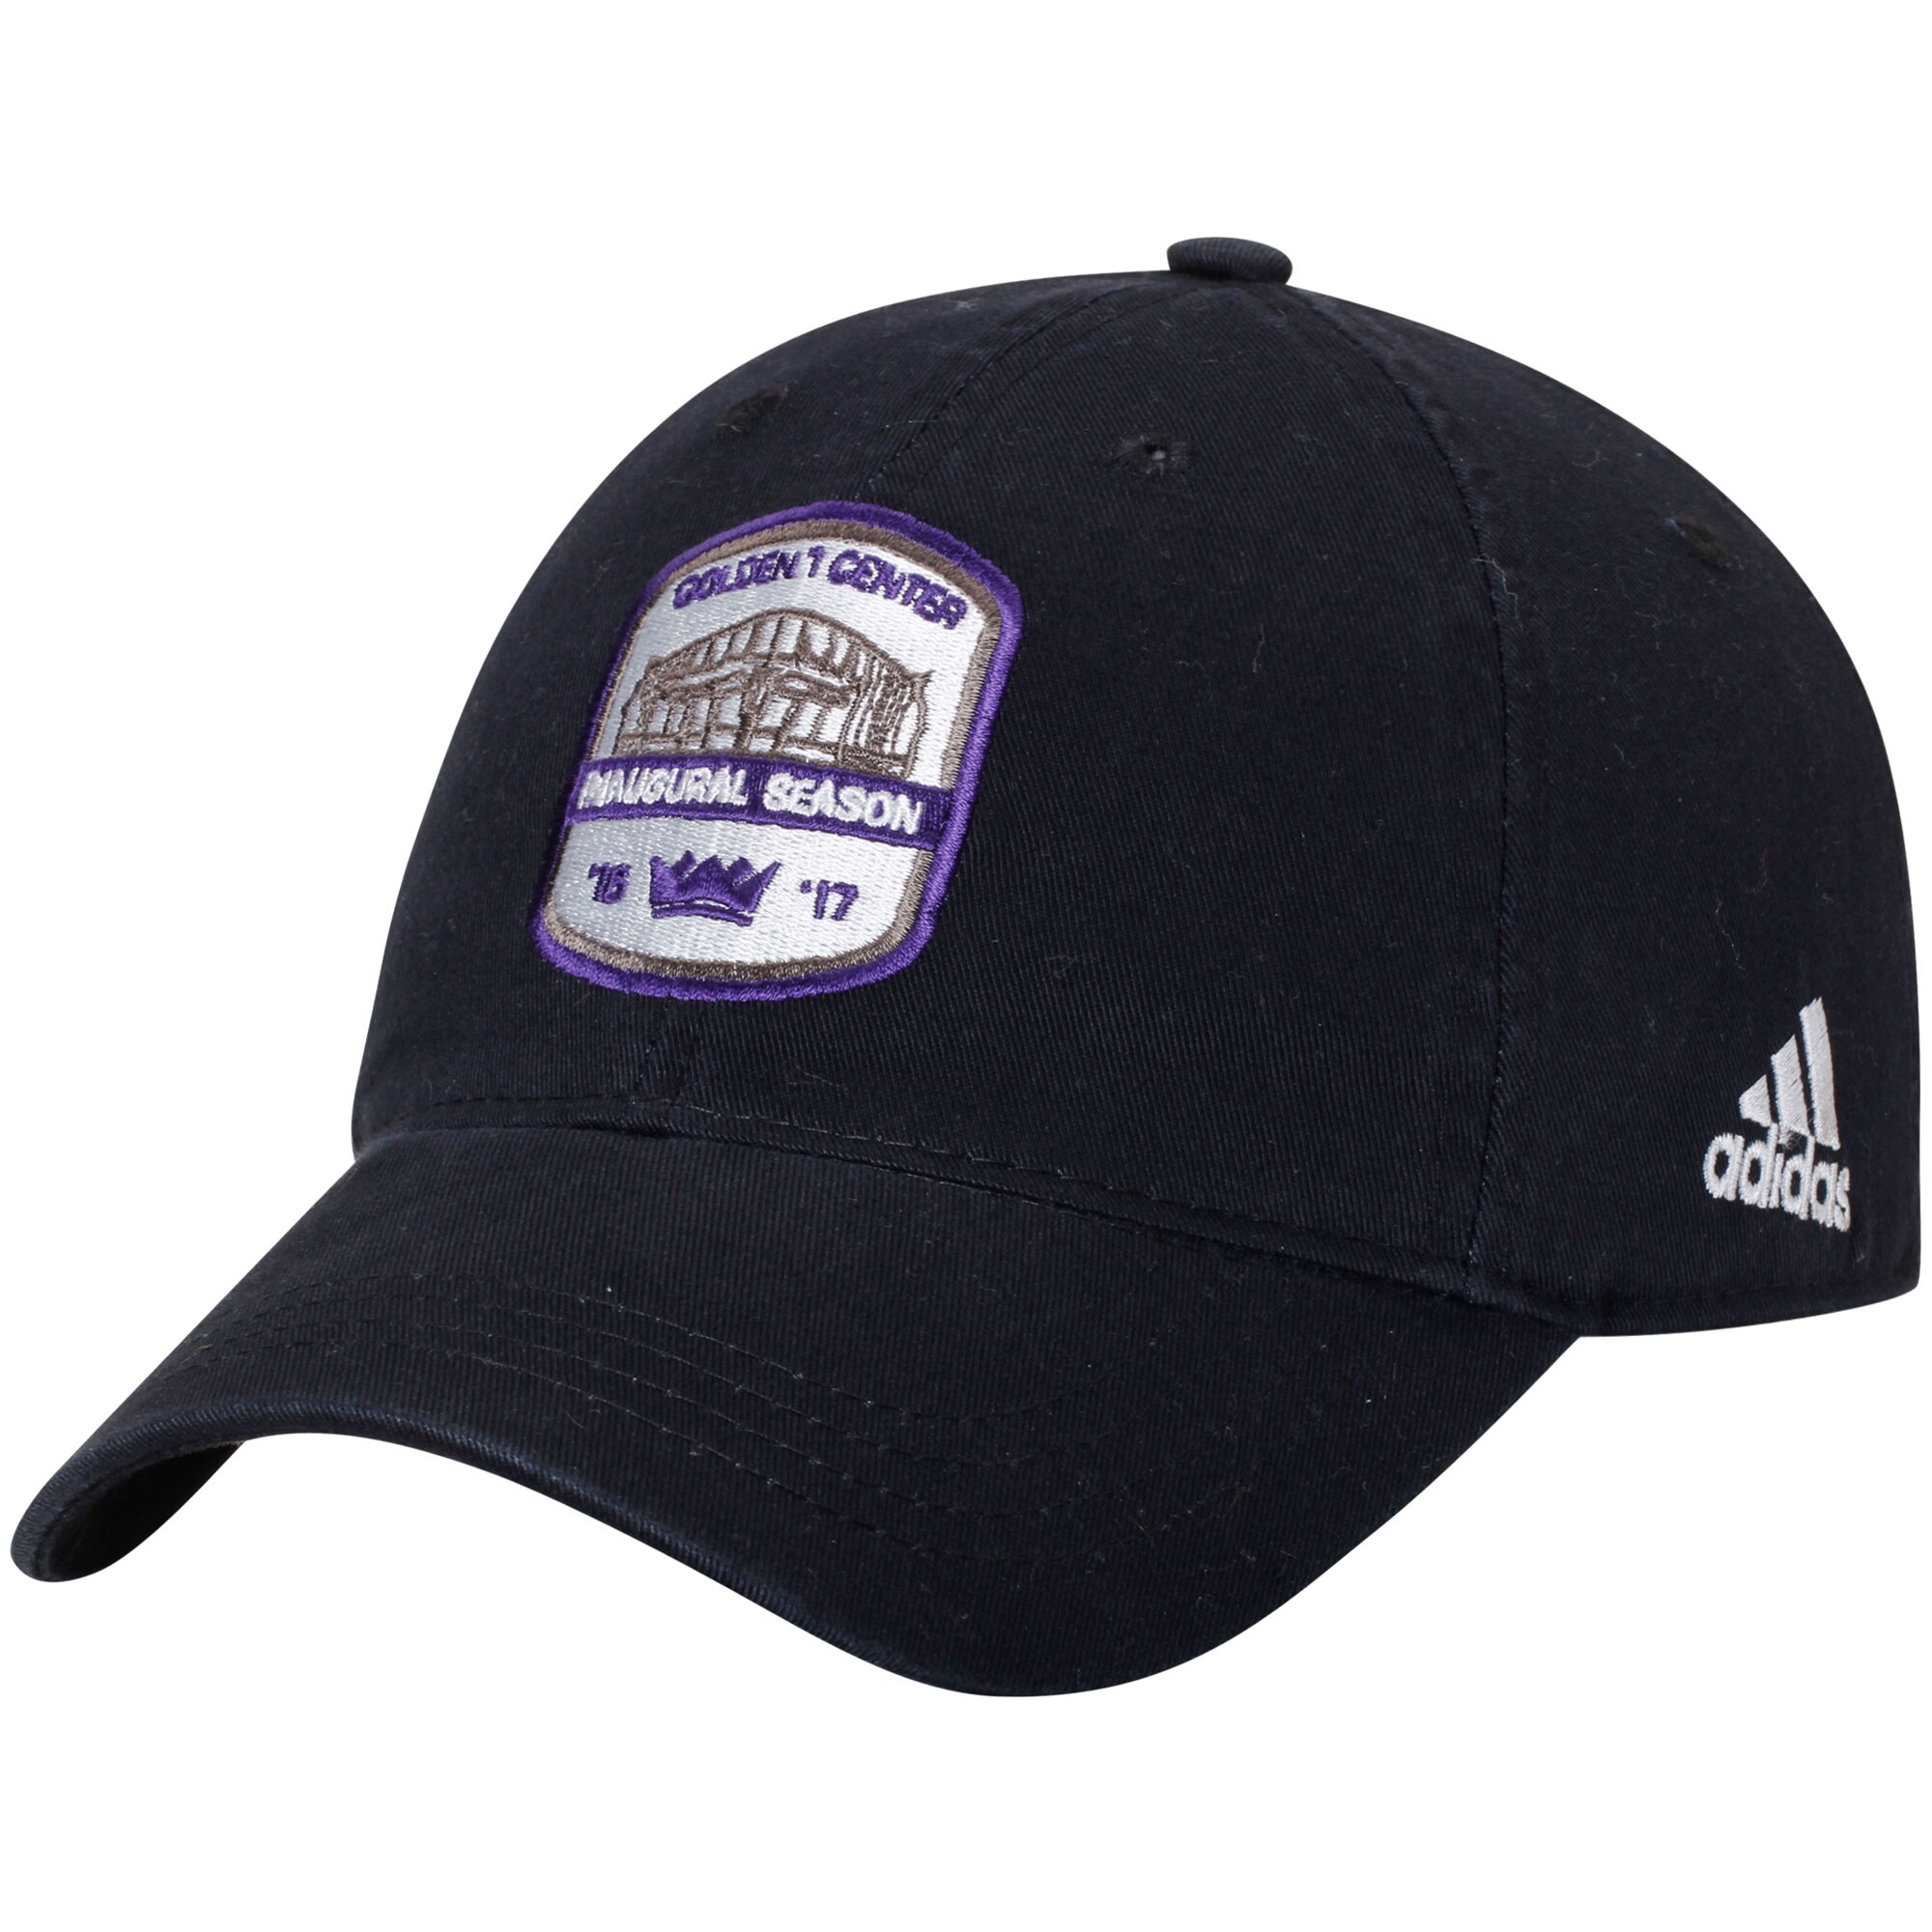 Sacramento Kings adidas Anniversary Adjustable Hat - Black